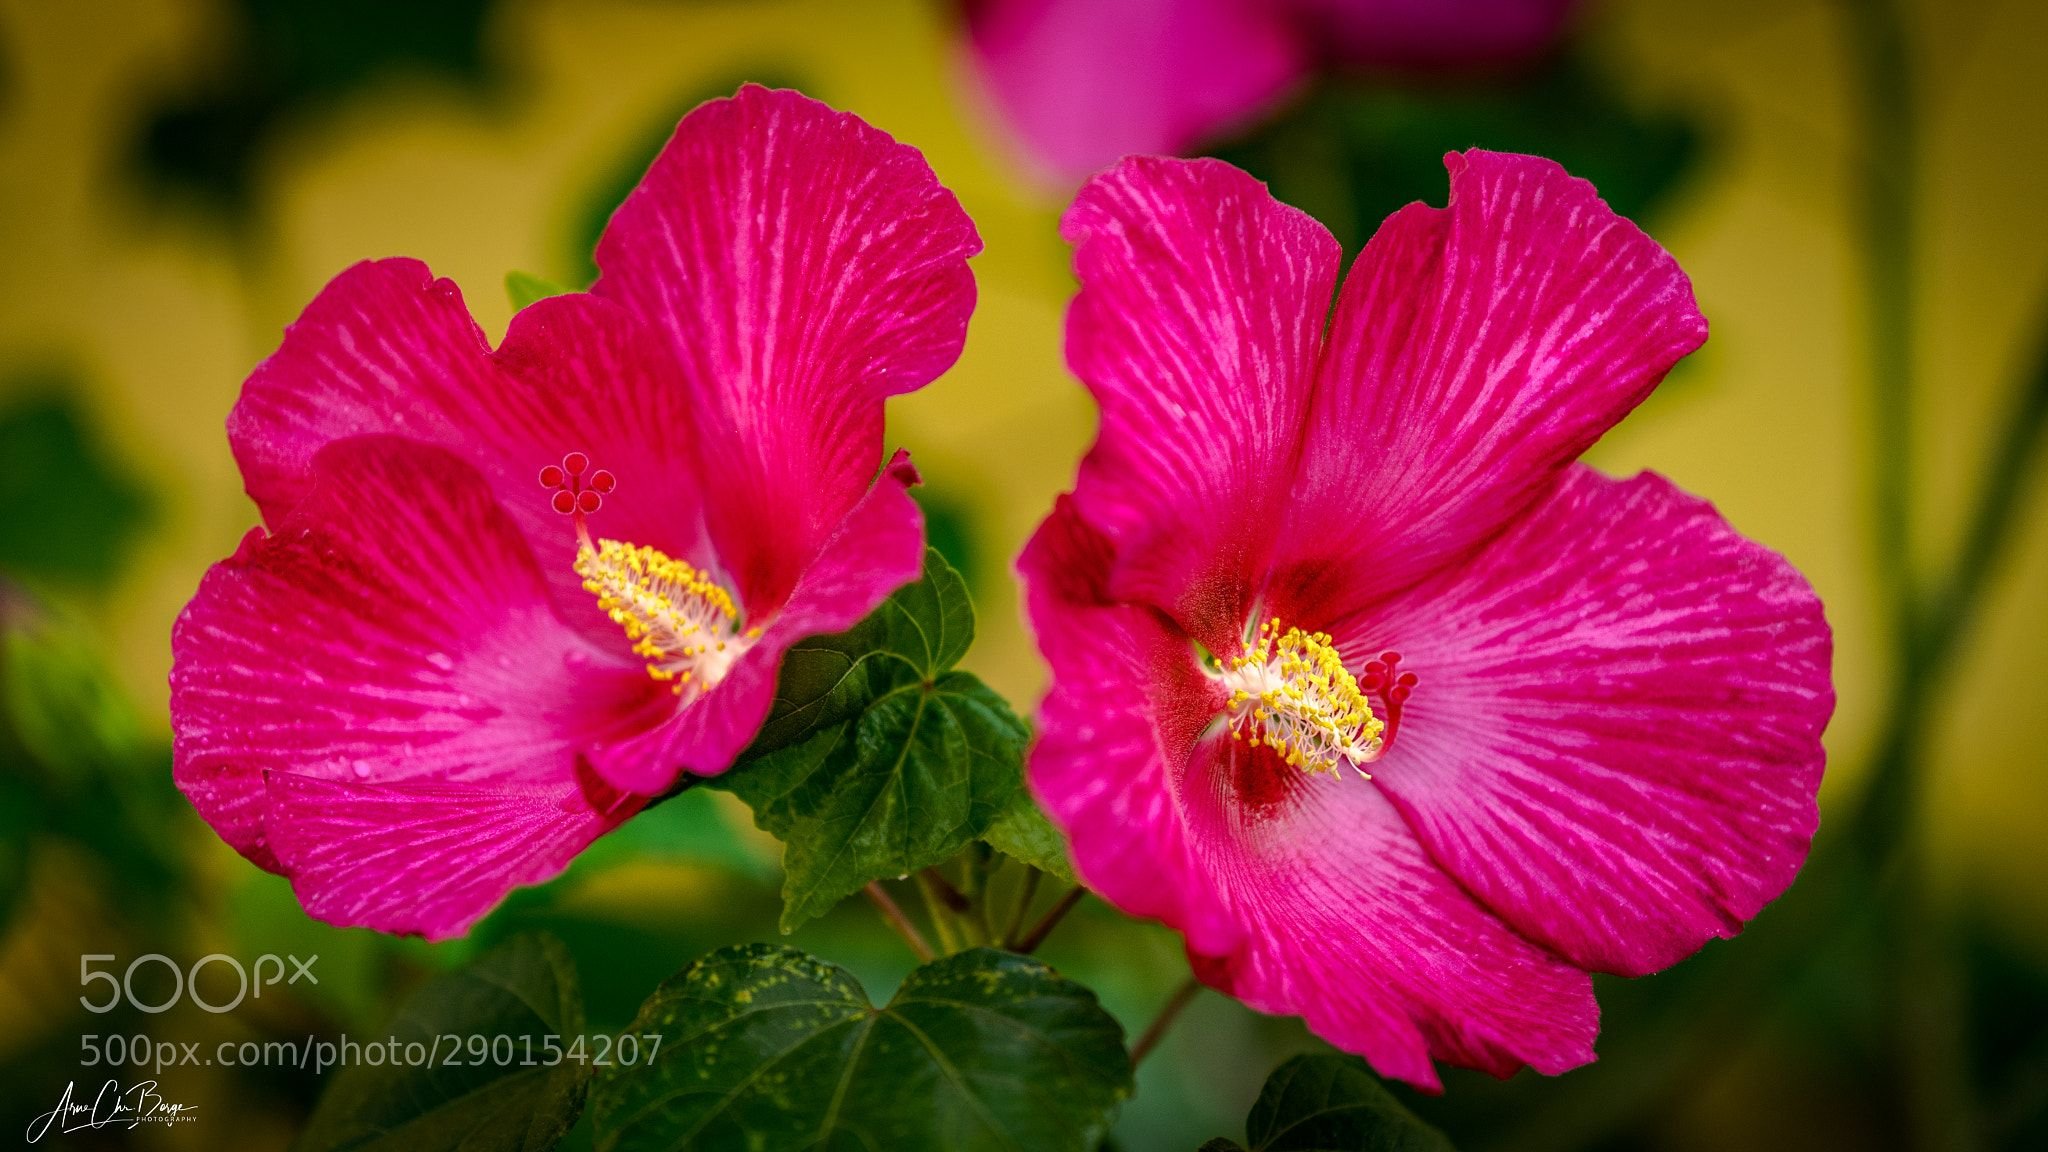 Red Hibiskus Hibiscus Flower Cha Ba Flower In Thailand A Tea Made From Hibiscus Flowers Is Known By Hibiscus Flowers Frequent Flyer Miles Hibiscus